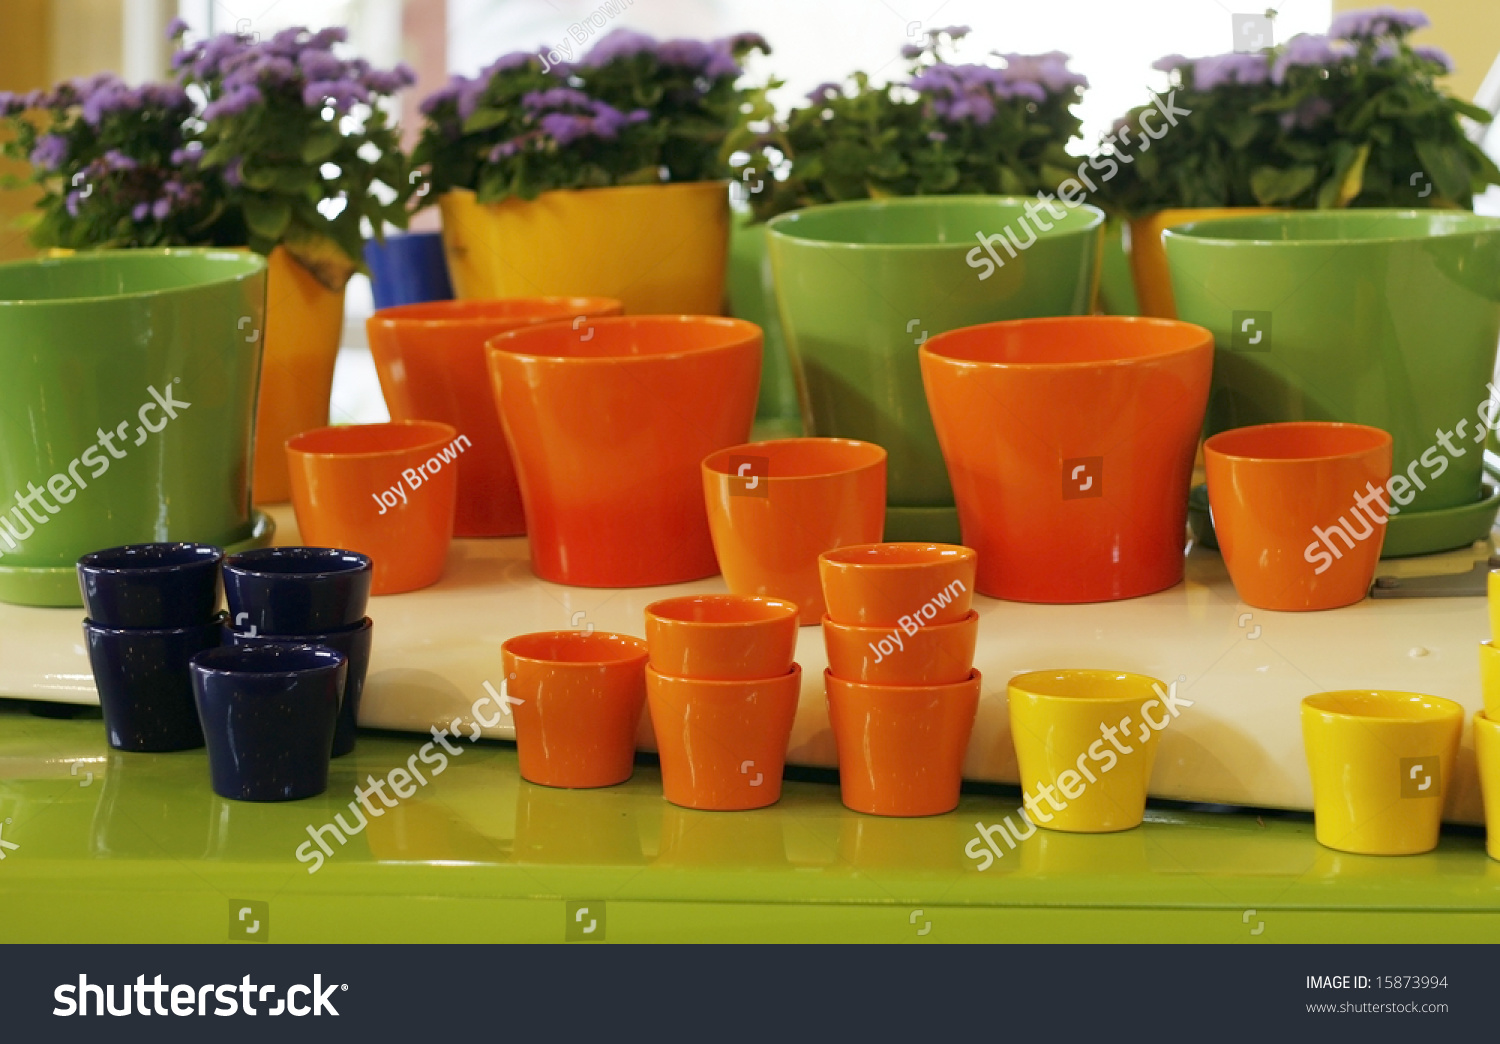 Colorful Planters Stock Photo (Safe to Use) 15873994 - Shutterstock